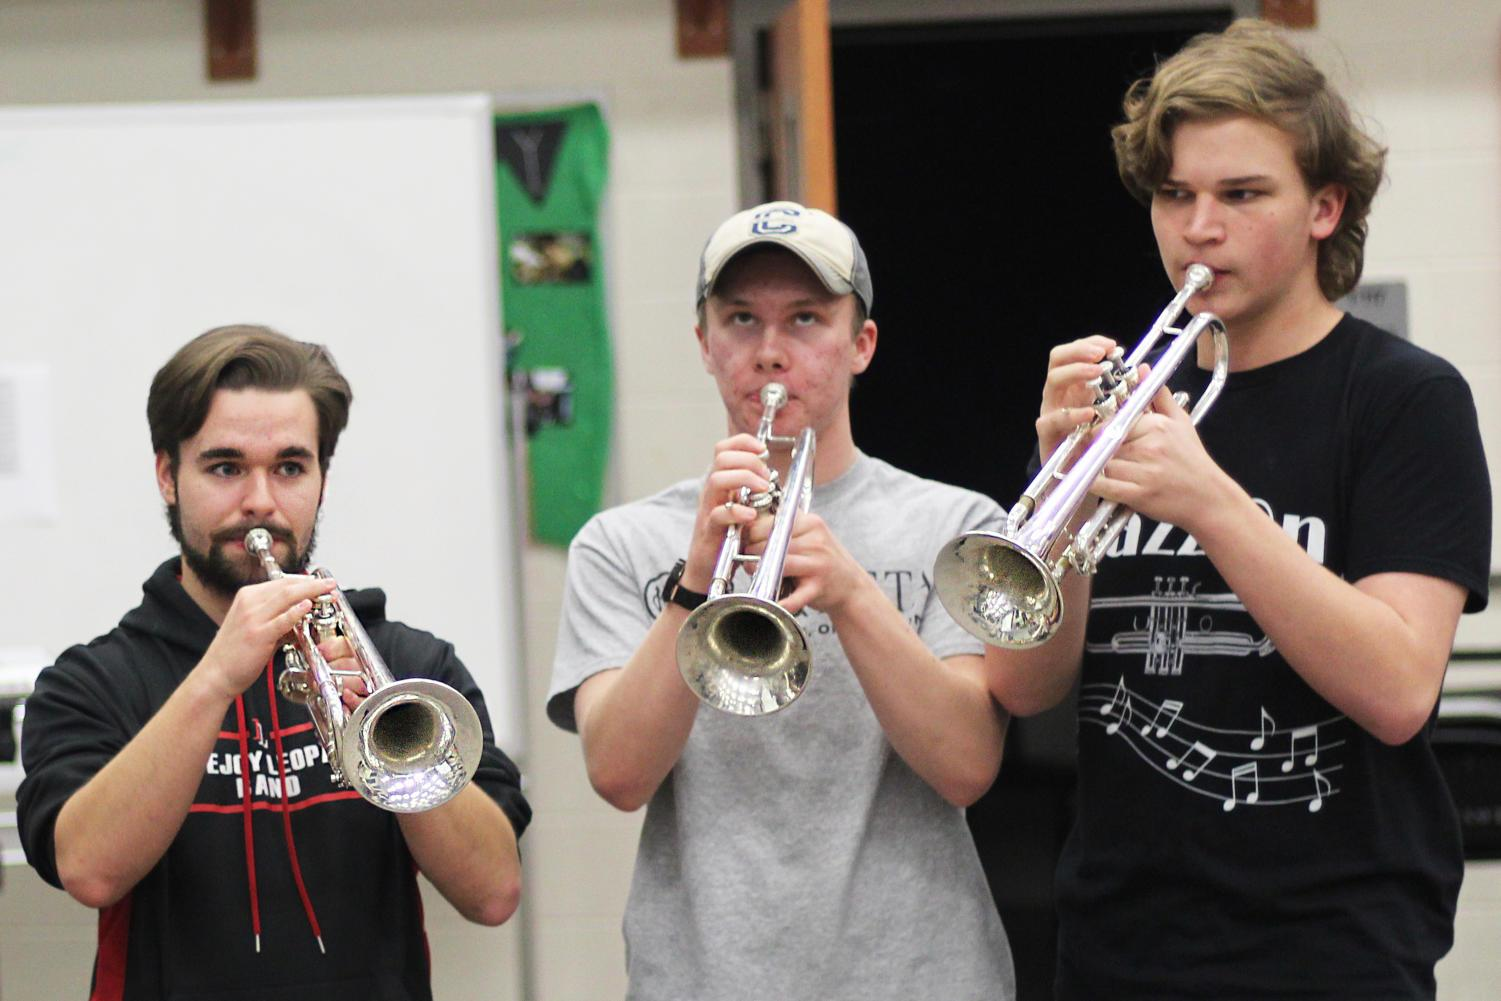 Senior Patrick O'Brien, Sophomore Jake McTee, and Junior Sam Oats all play the trumpet in the Jazz band.